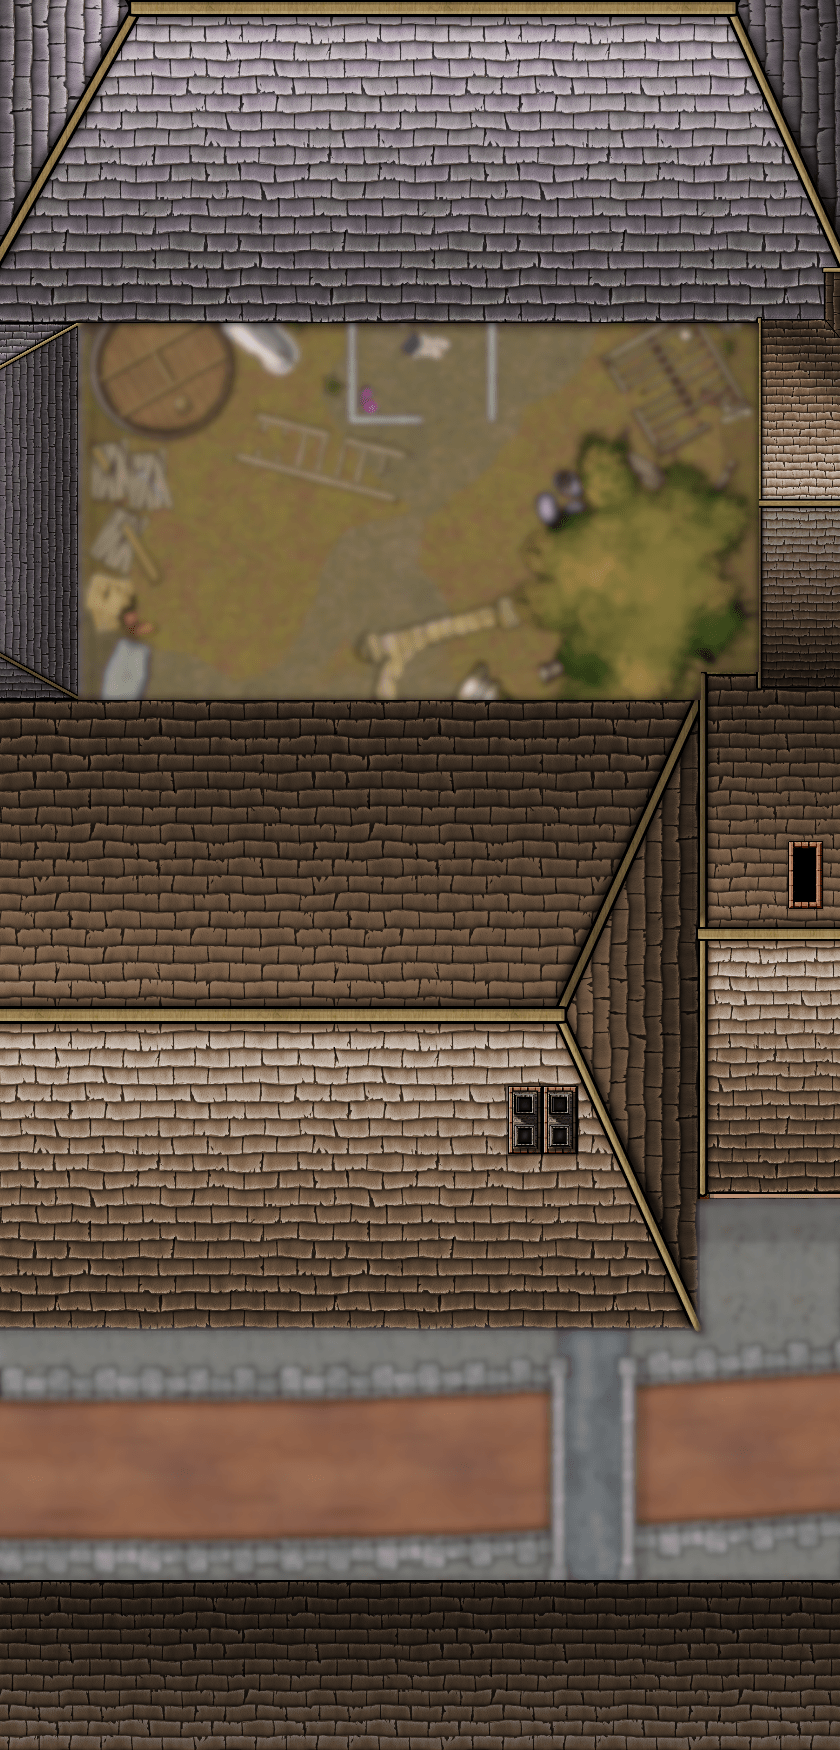 Roof Level Locale